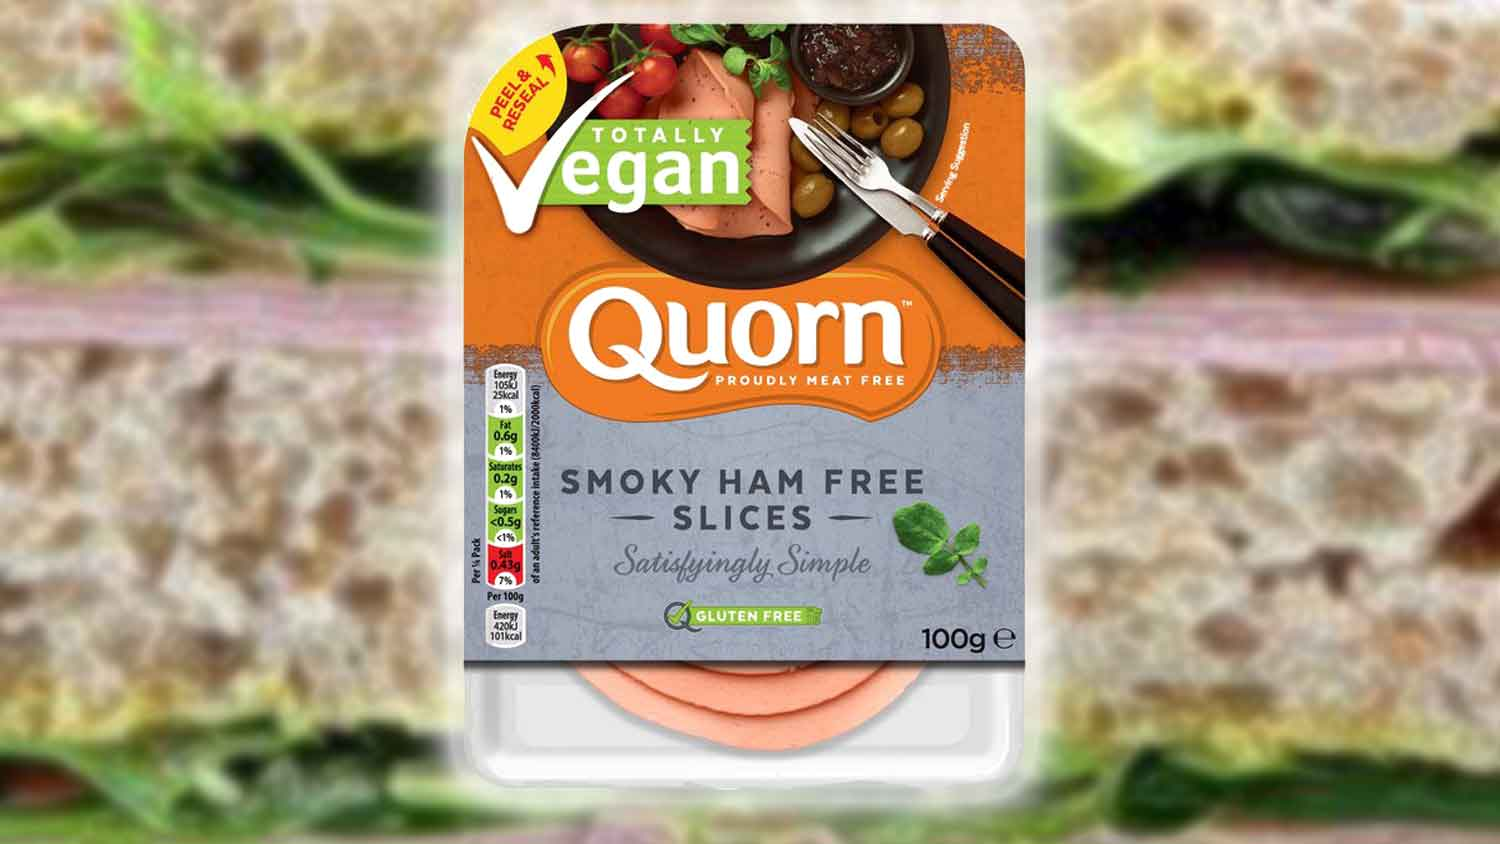 The Complete Guide To Vegan Quorn Products